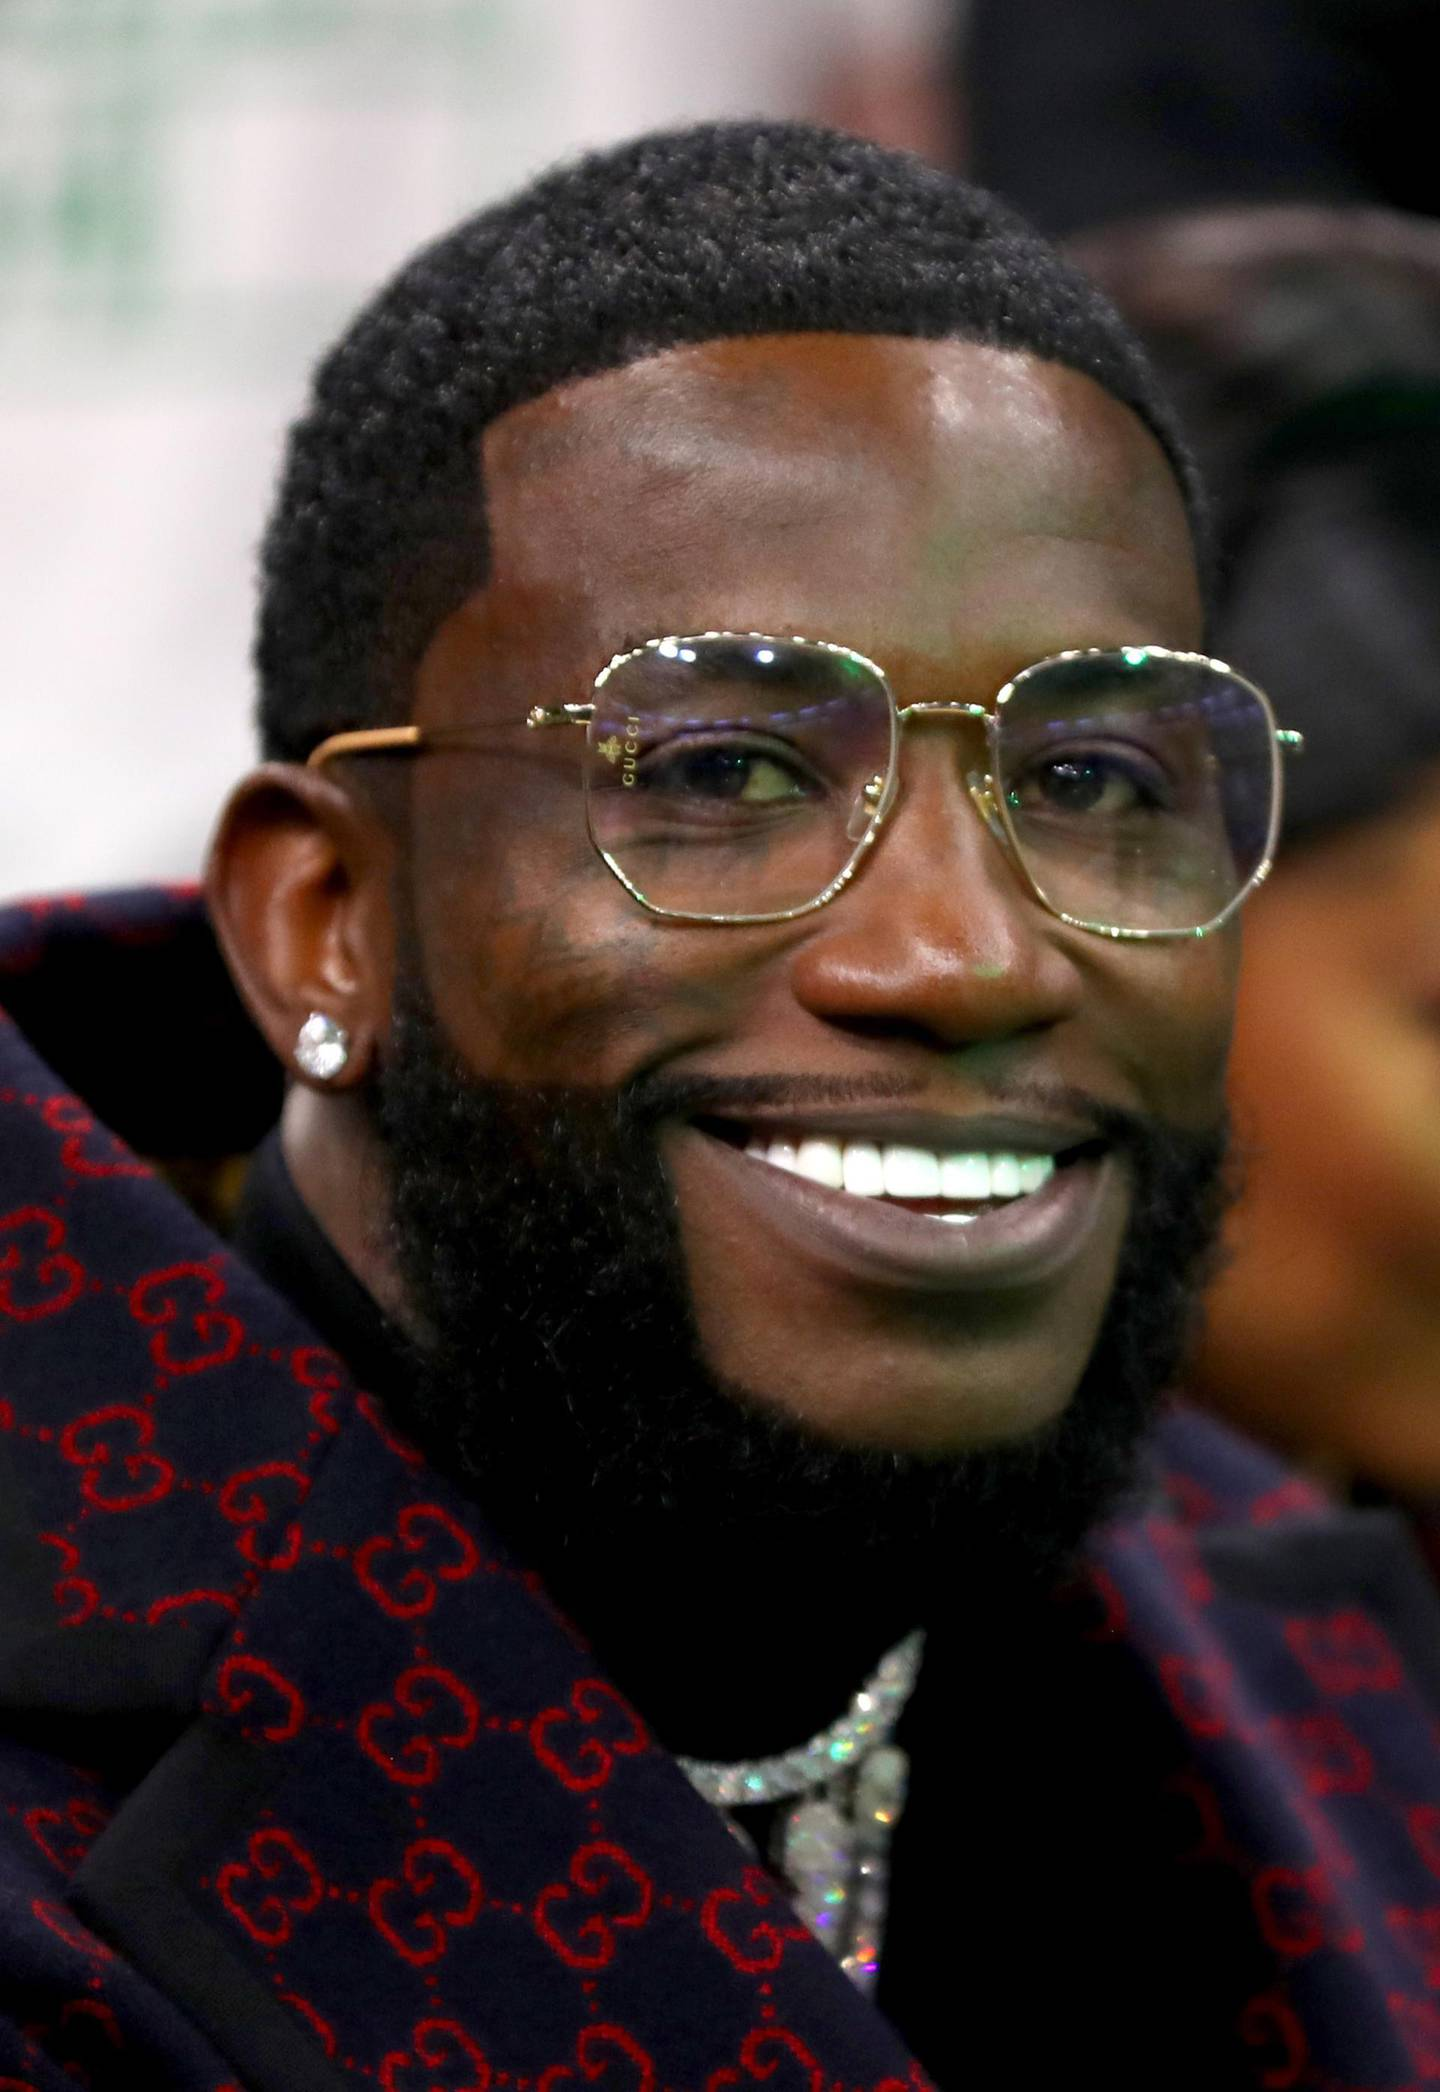 BOSTON, MASSACHUSETTS - NOVEMBER 27: Rapper Gucci Mane looks on from court side before the game between the Boston Celtics and the Brooklyn Nets TD Garden on November 27, 2019 in Boston, Massachusetts.   Maddie Meyer/Getty Images/AFP